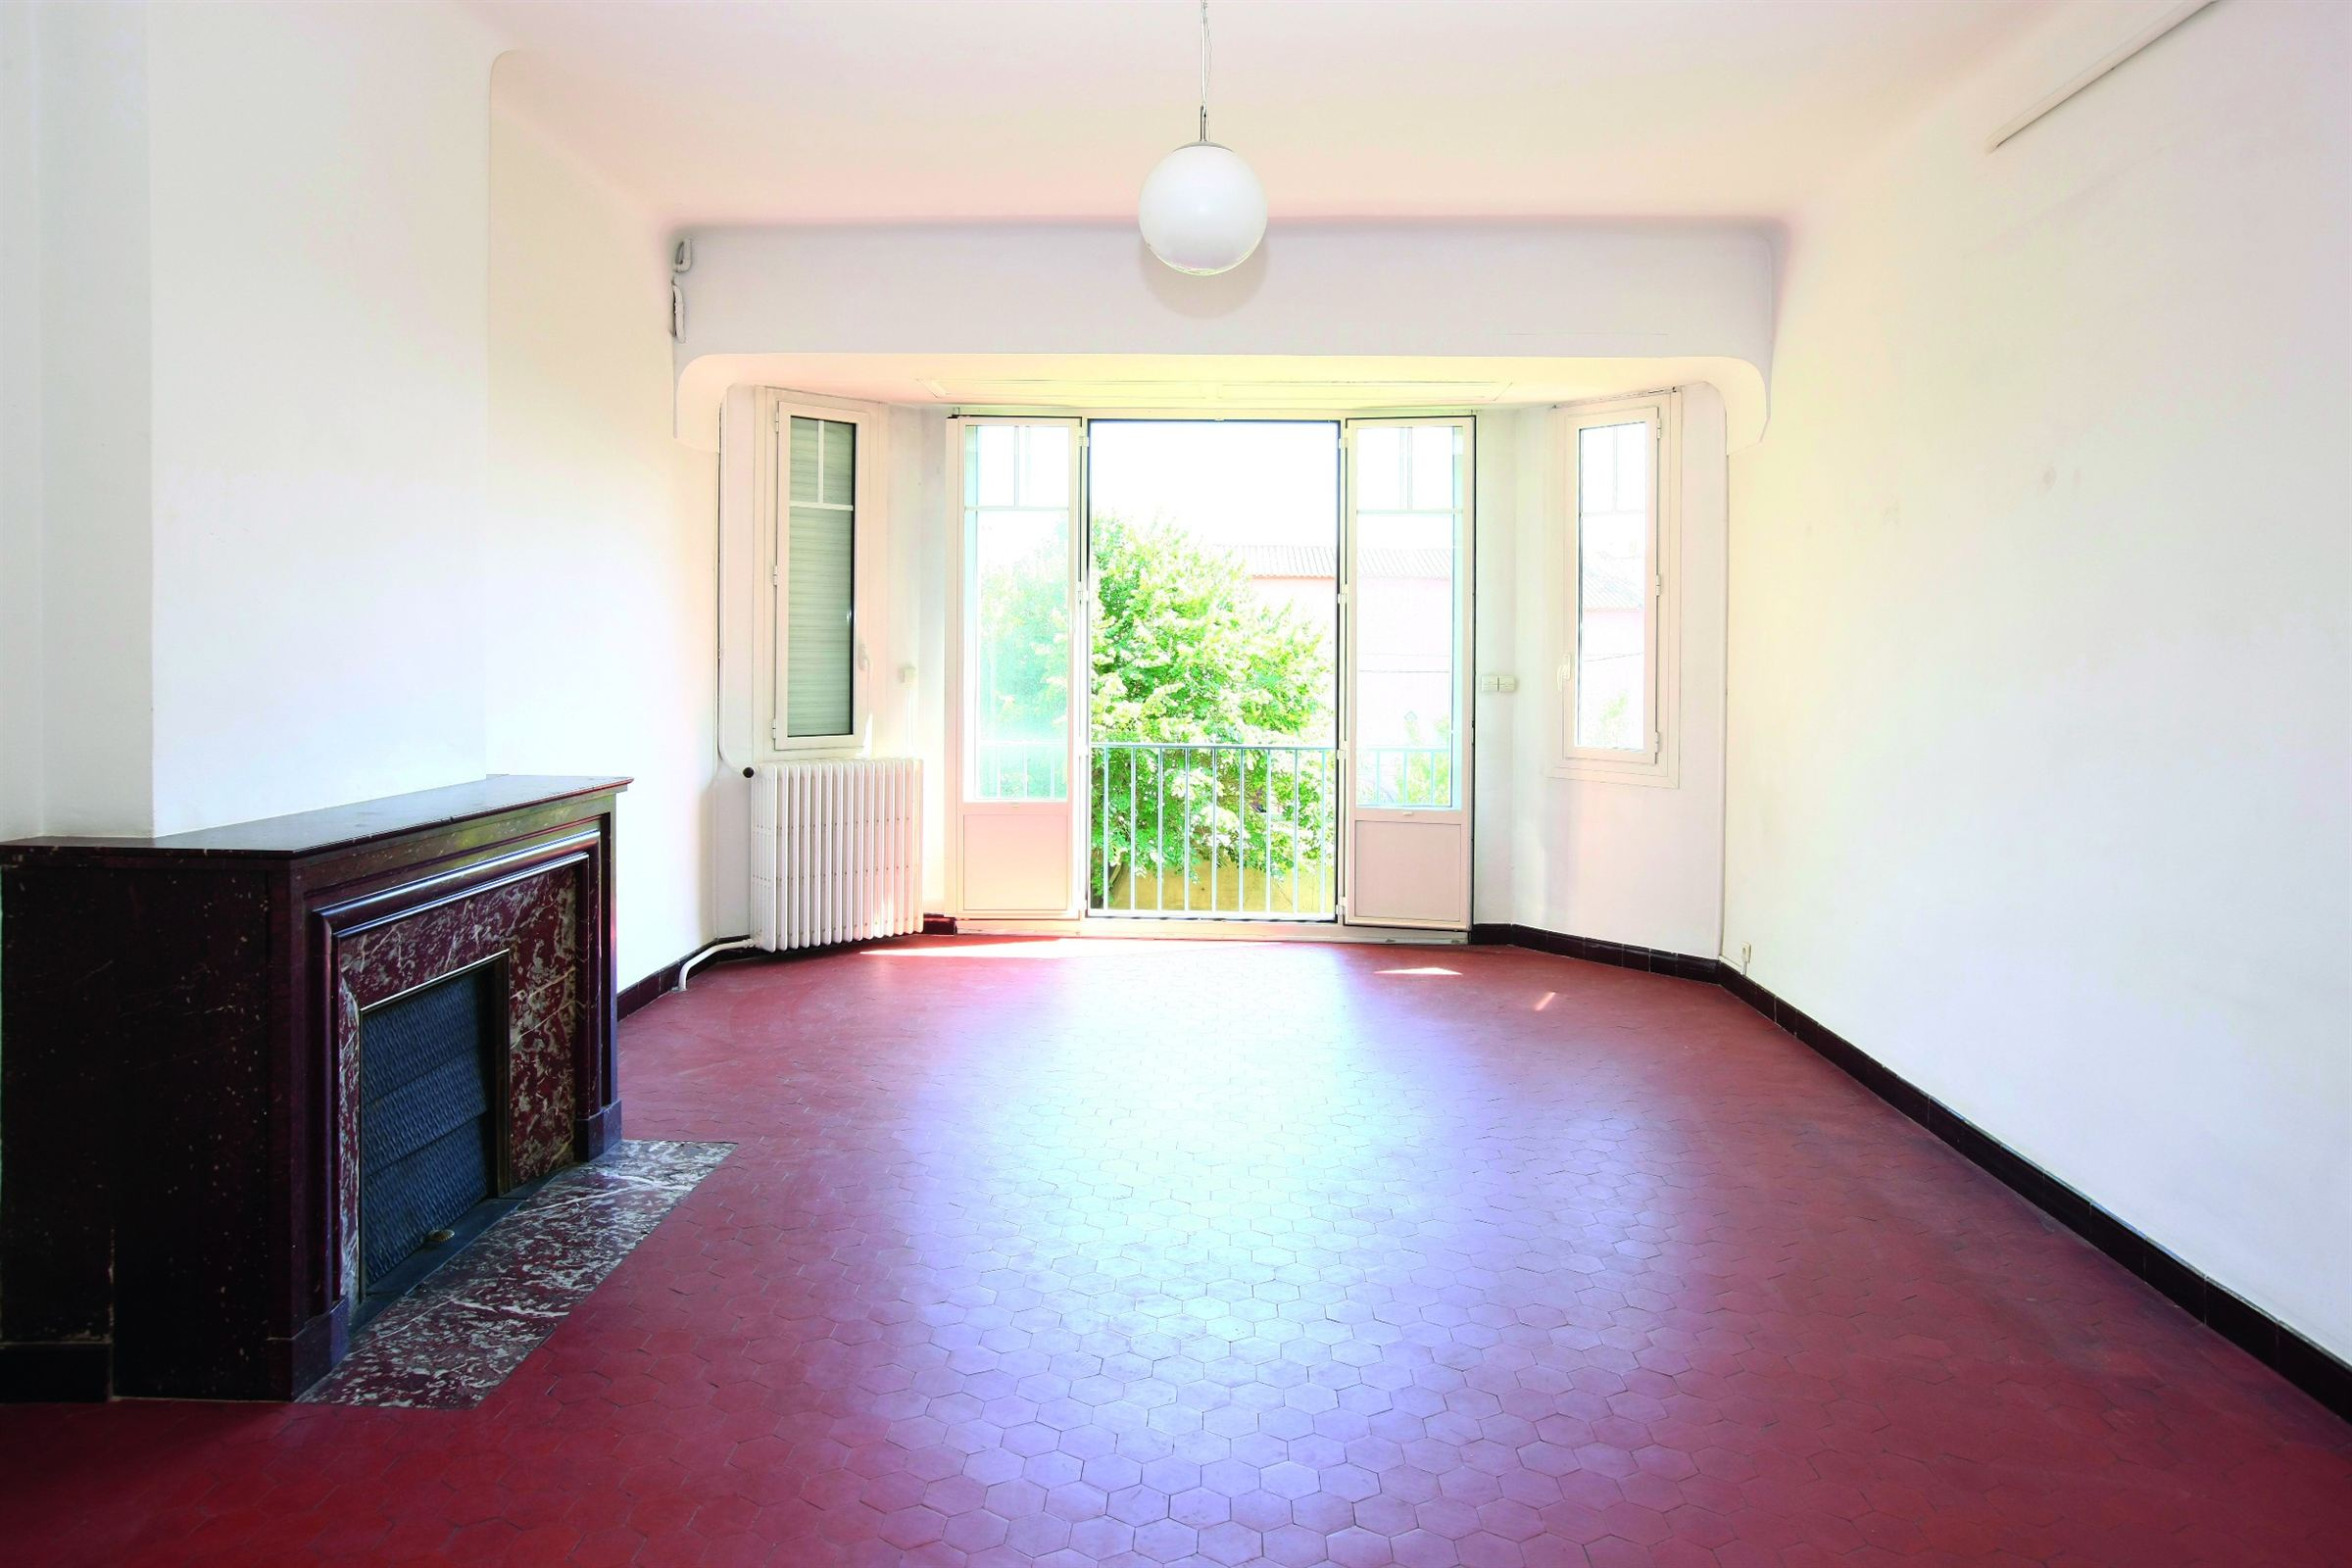 Apartment for Sale at 2minutes by foot from Cours Mirabeau - Aix-en-Provence Other Provence-Alpes-Cote D'Azur, Provence-Alpes-Cote D'Azur, 13100 France